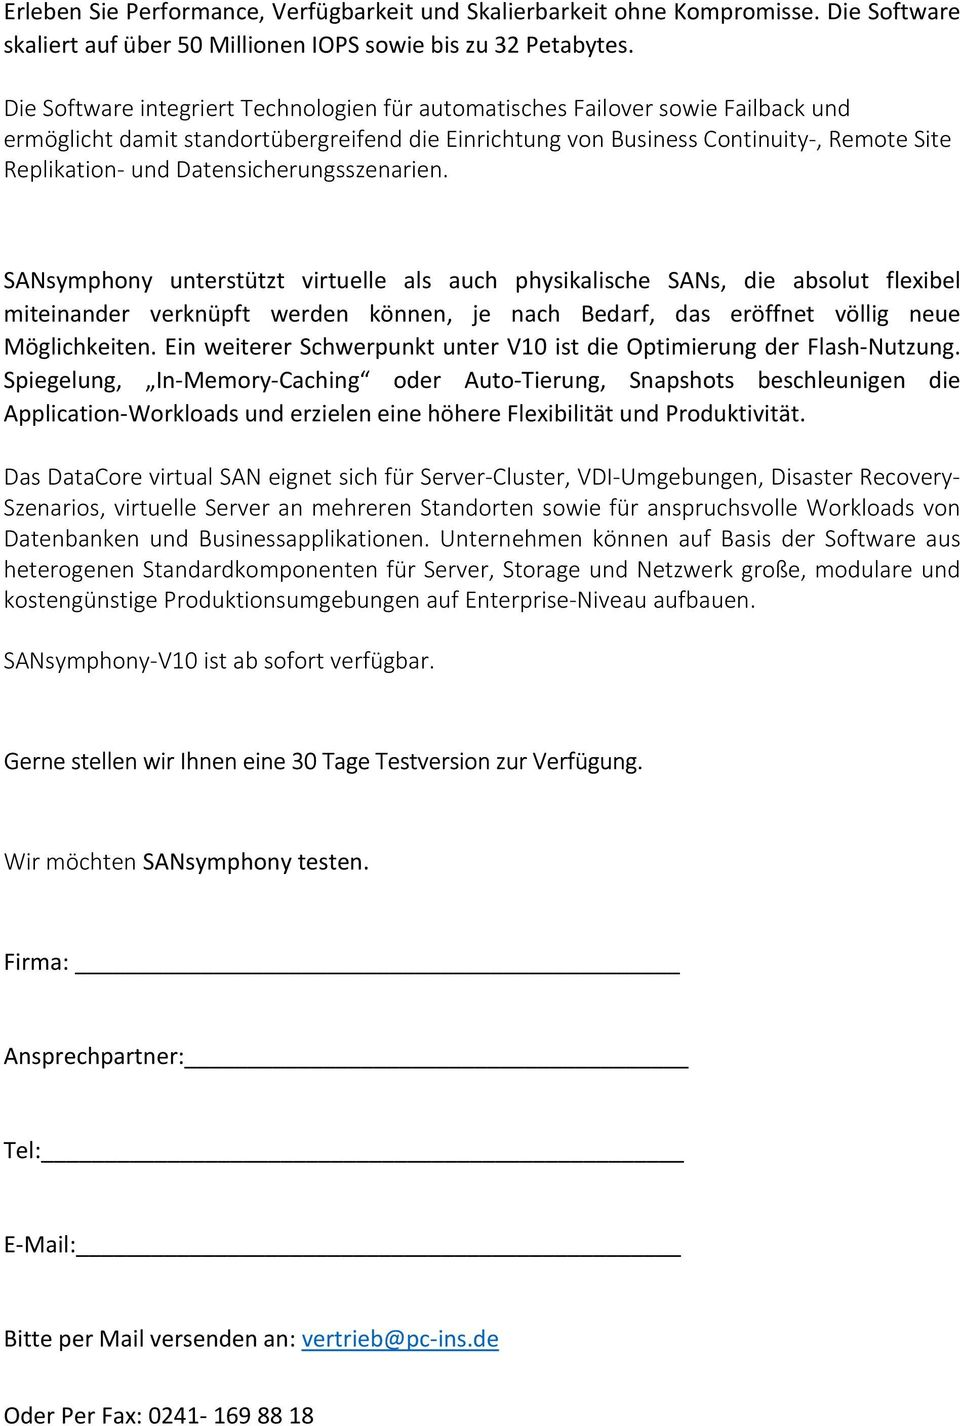 Datensicherungsszenarien.